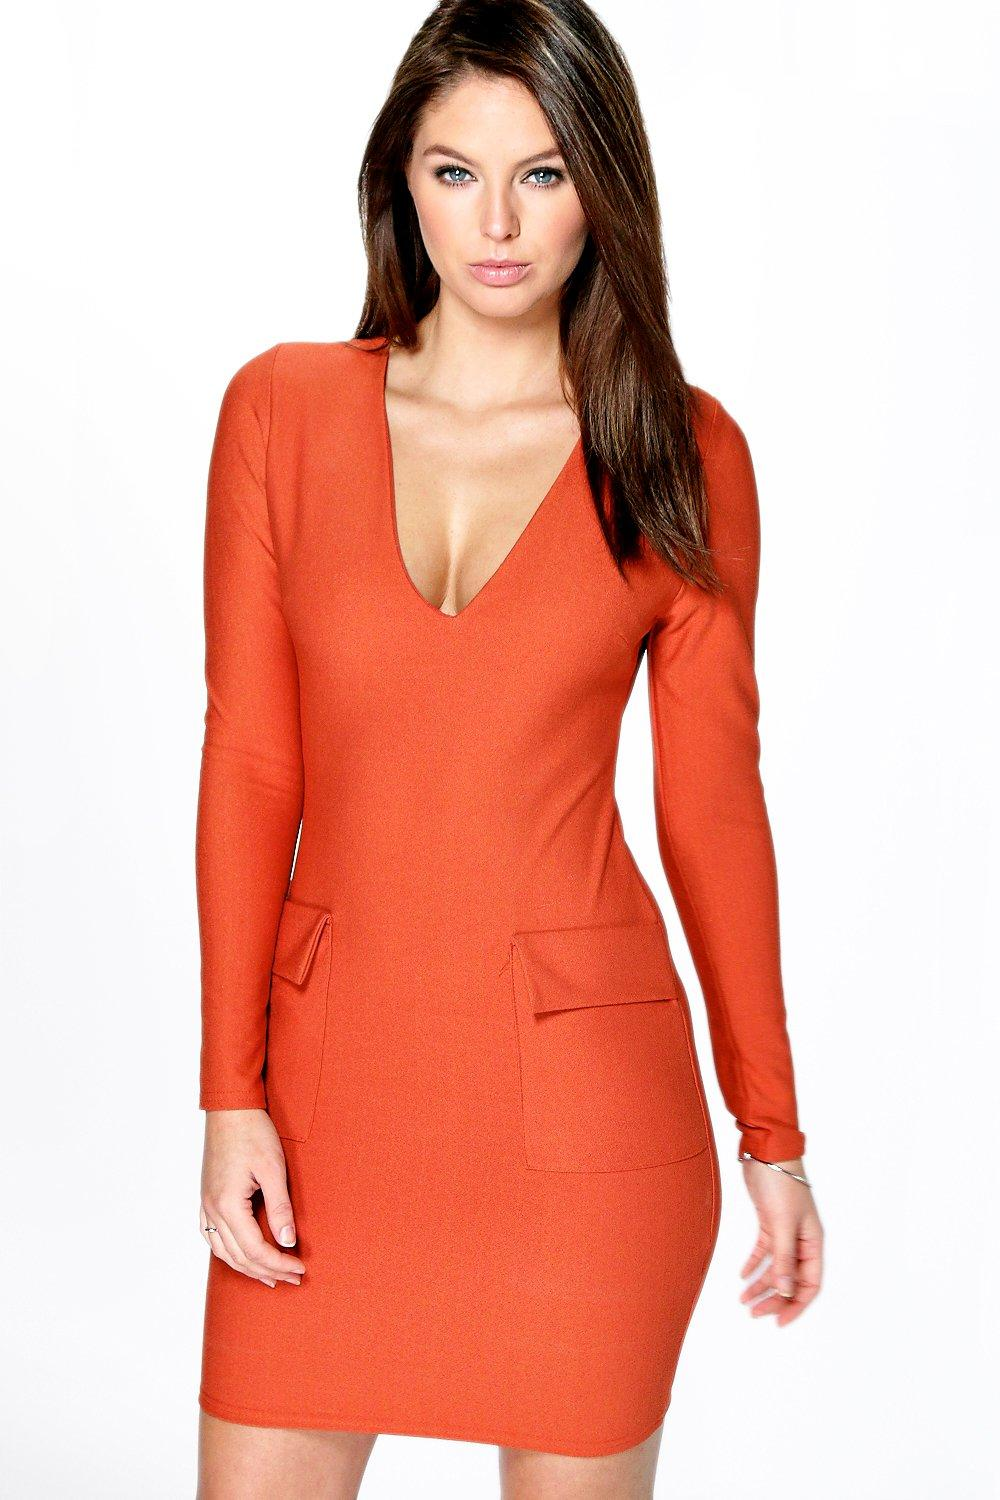 Callie Plunge Neck Pocket Detail Bodycon Dress